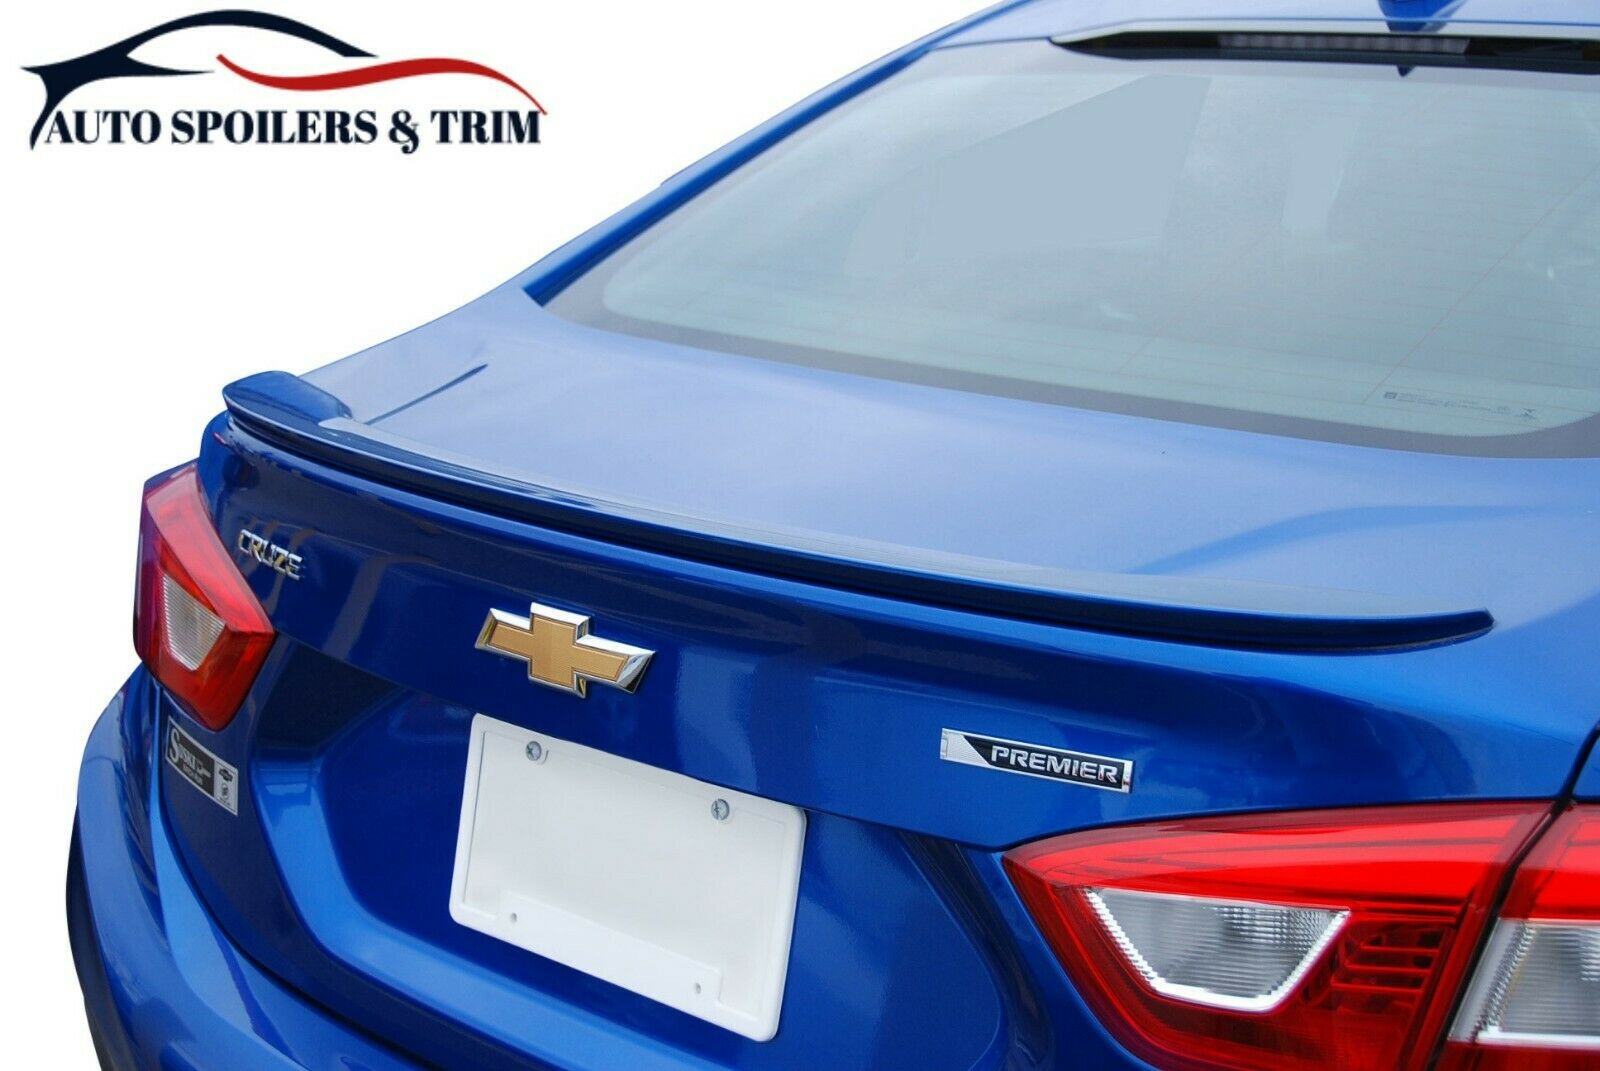 #534 3M PAINTED FACTORY STYLE LIP SPOILER fits the 2014-2019 CHEVROLET IMPALA